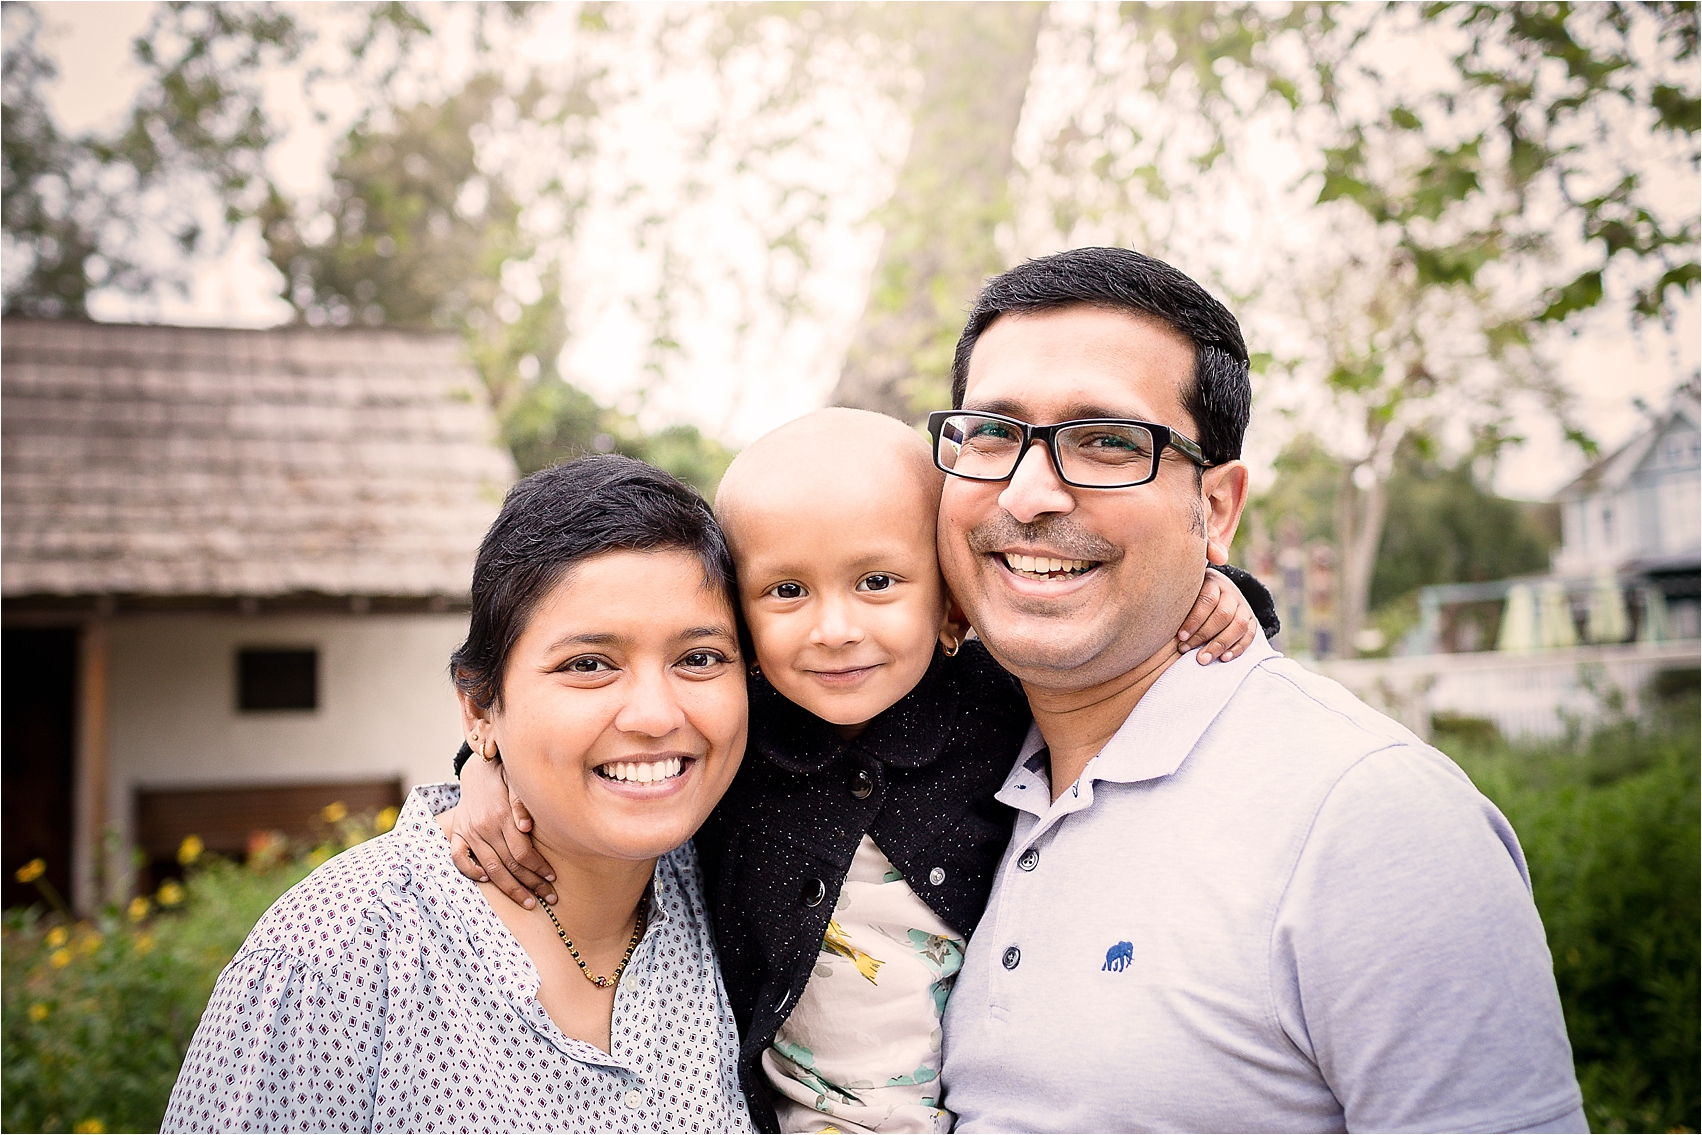 Meet Kaavya – Wilms Tumor